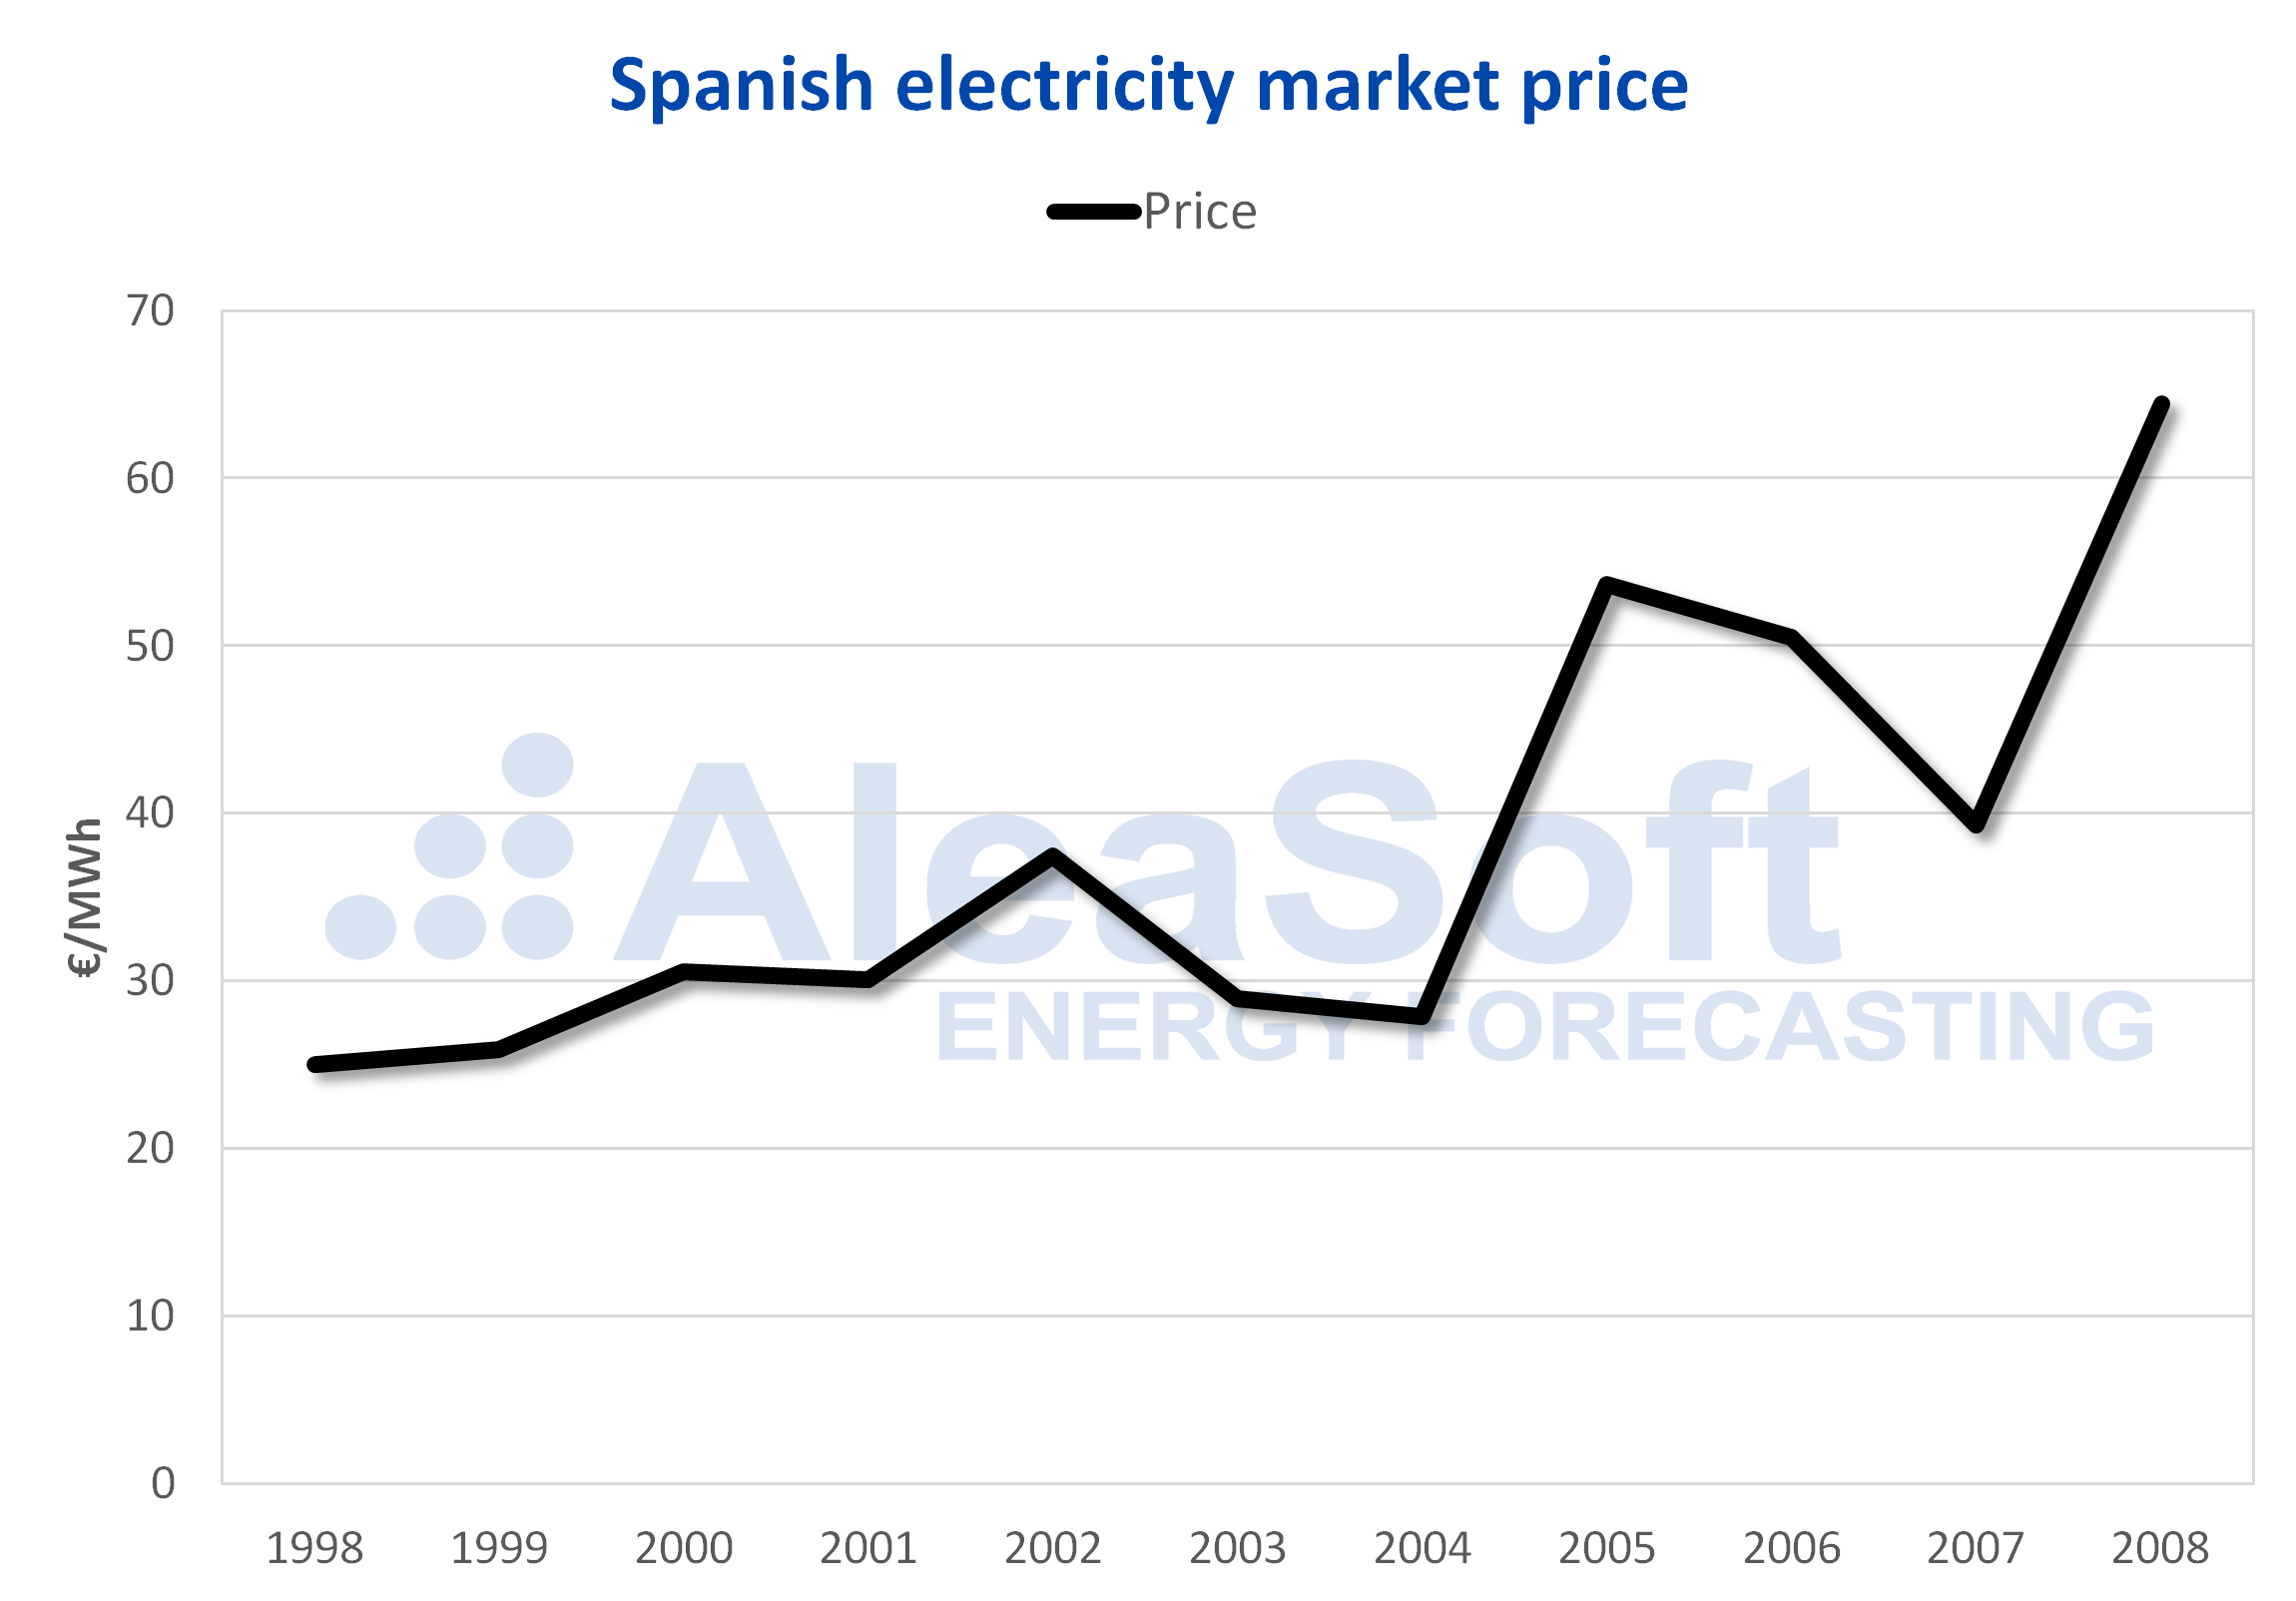 AleaSoft - Electricity market price